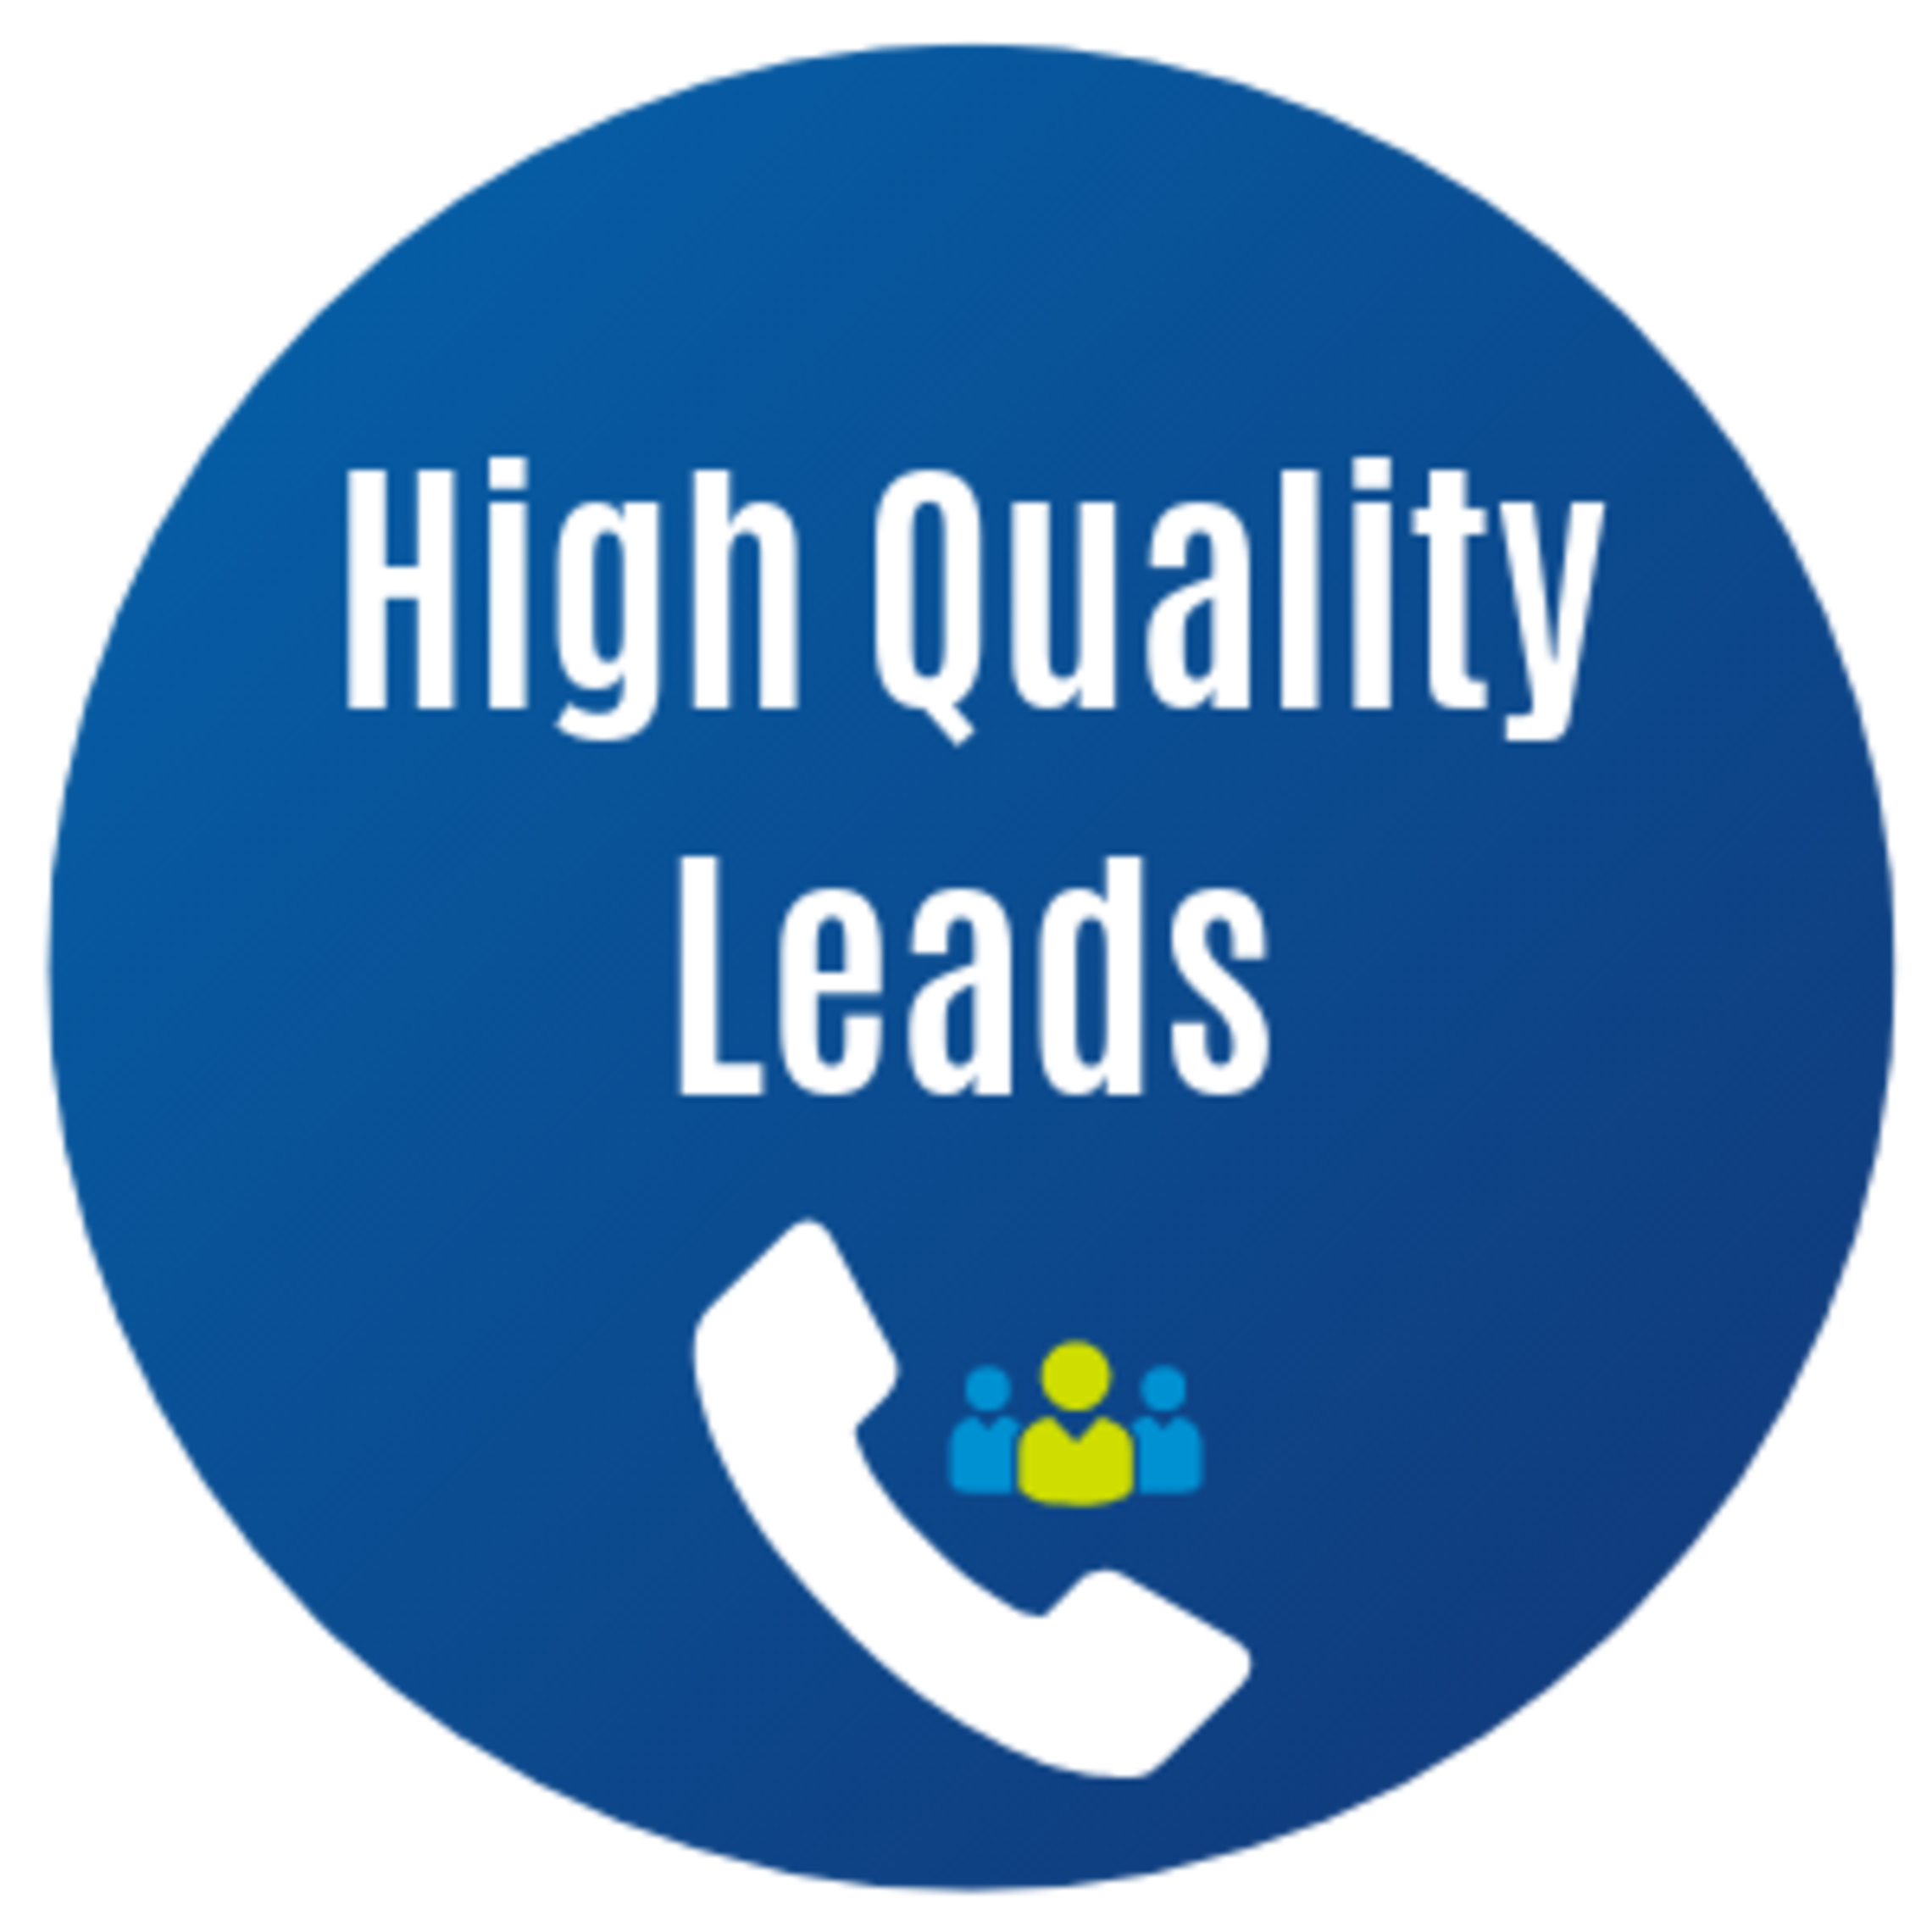 High Quality Leads